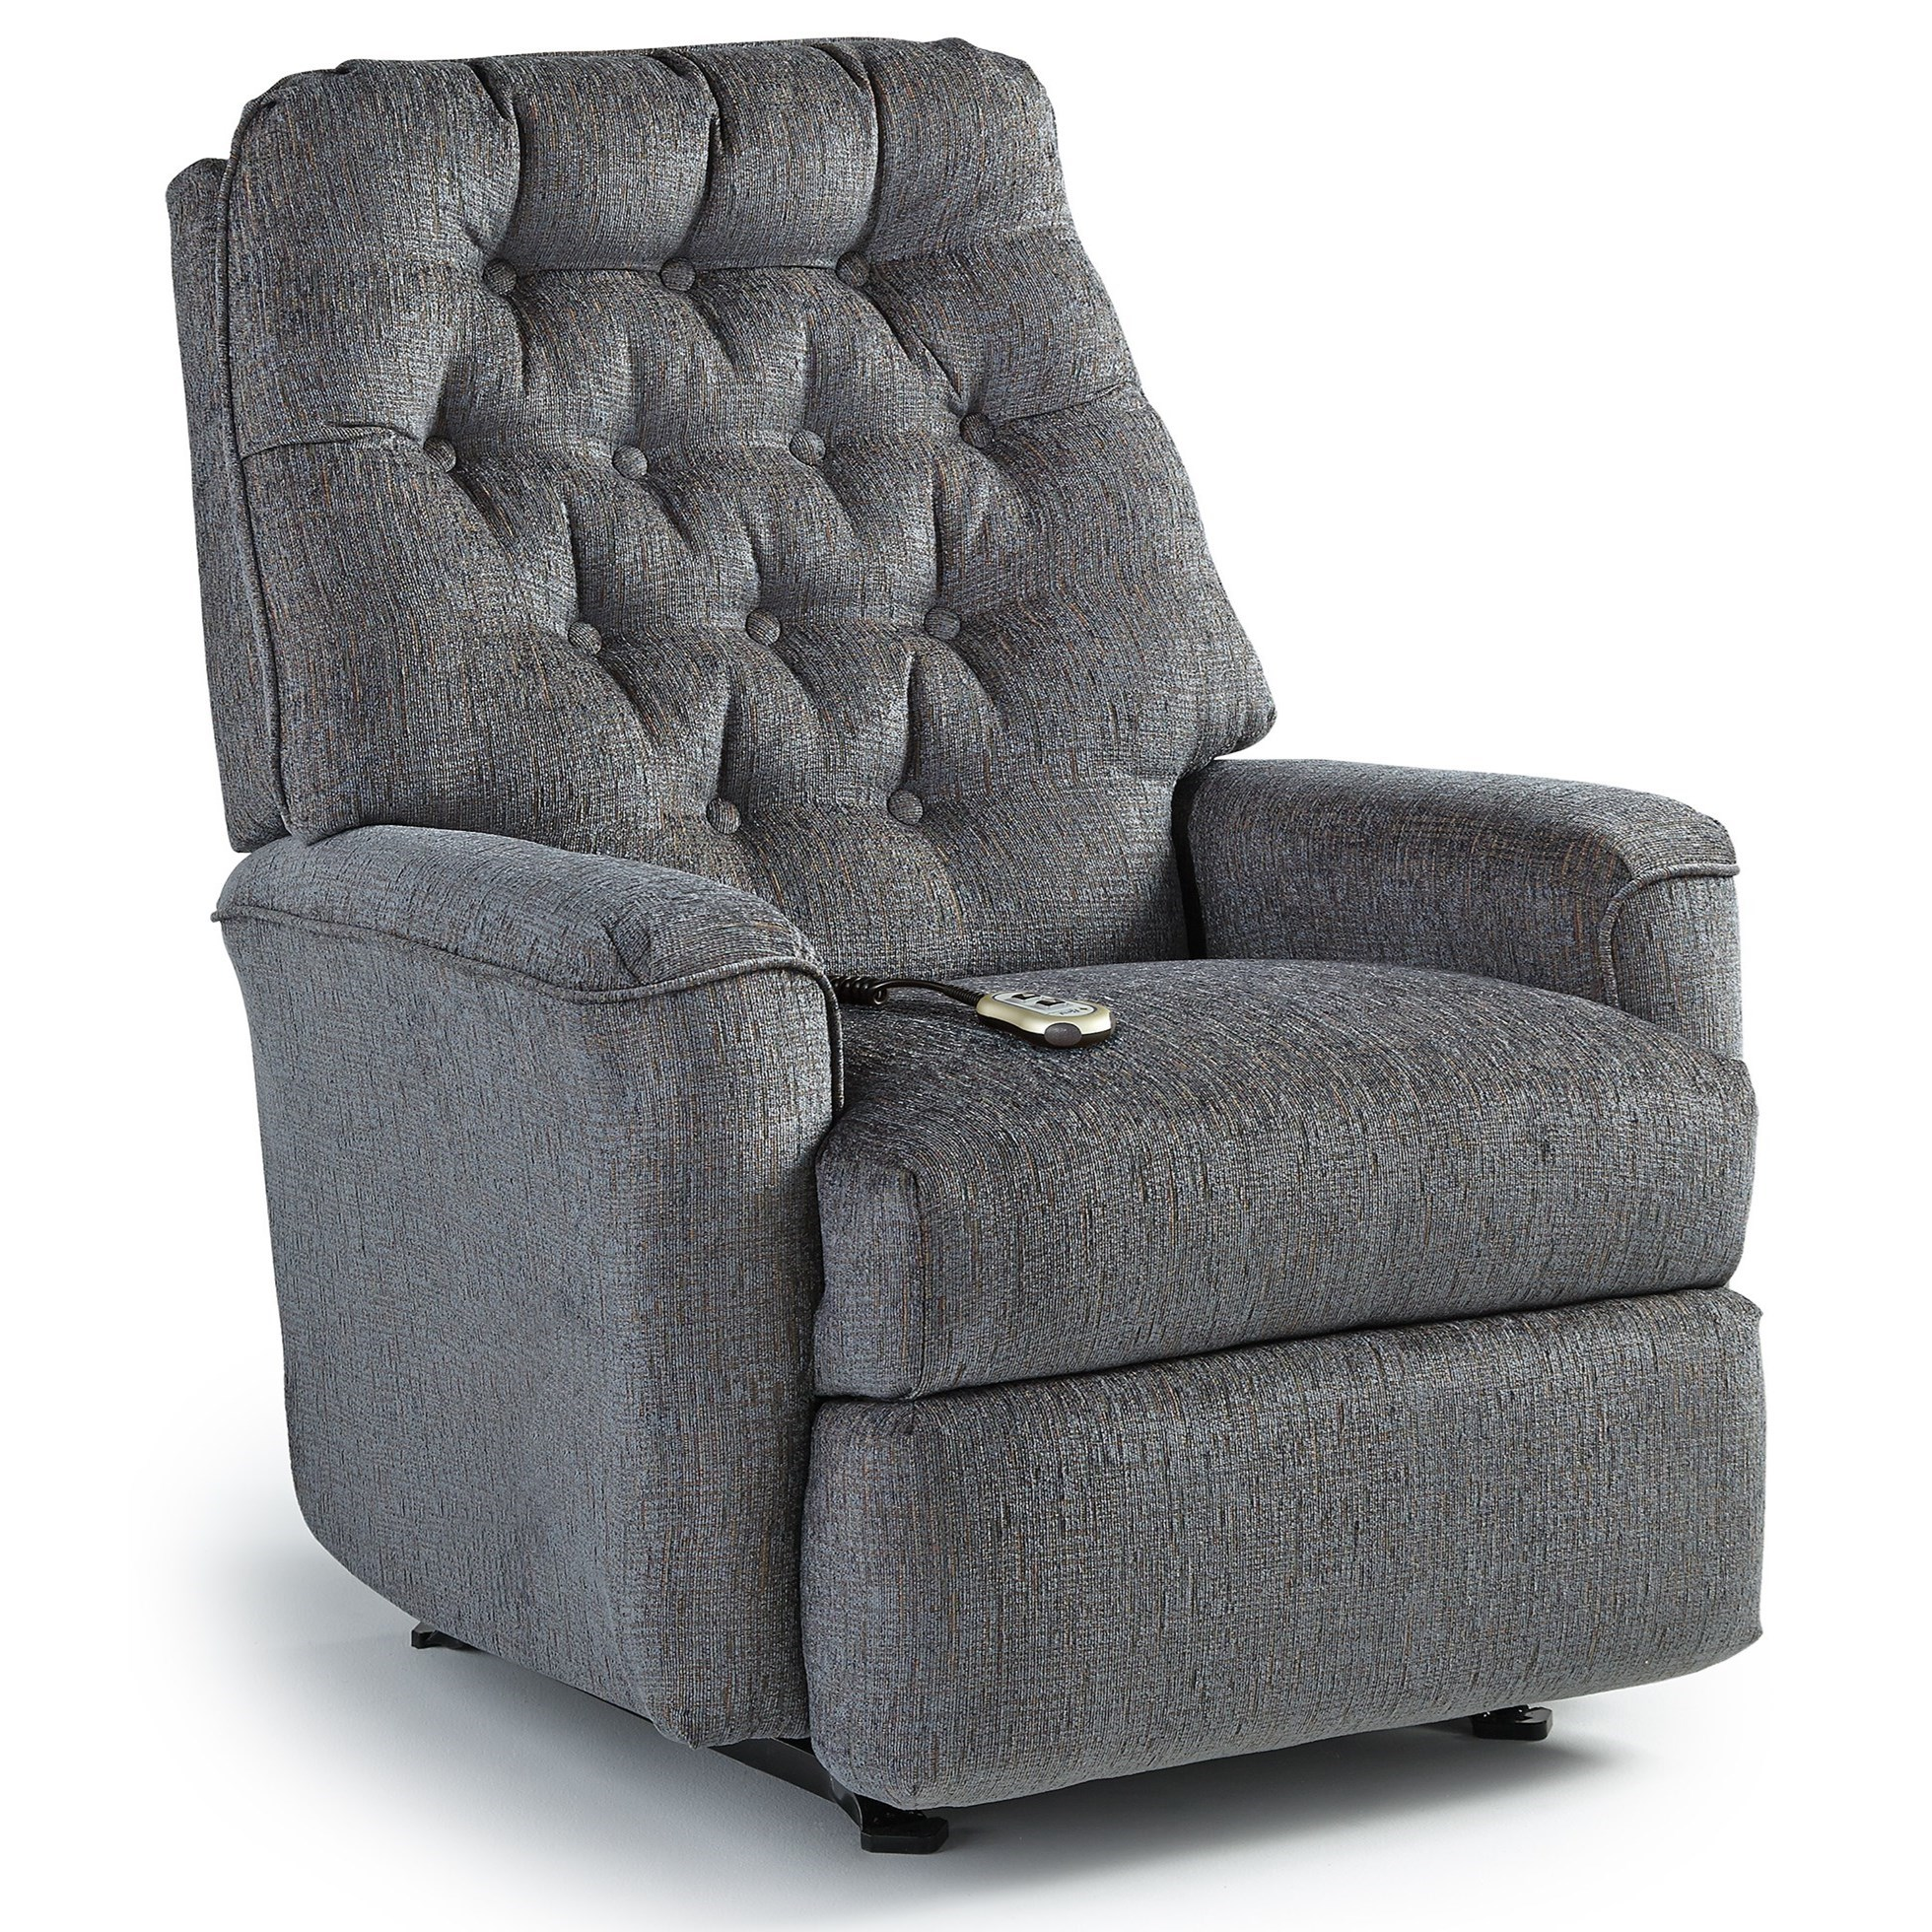 Medium Recliners Mexi Power Lift Recliner by Best Home Furnishings at Baer's Furniture